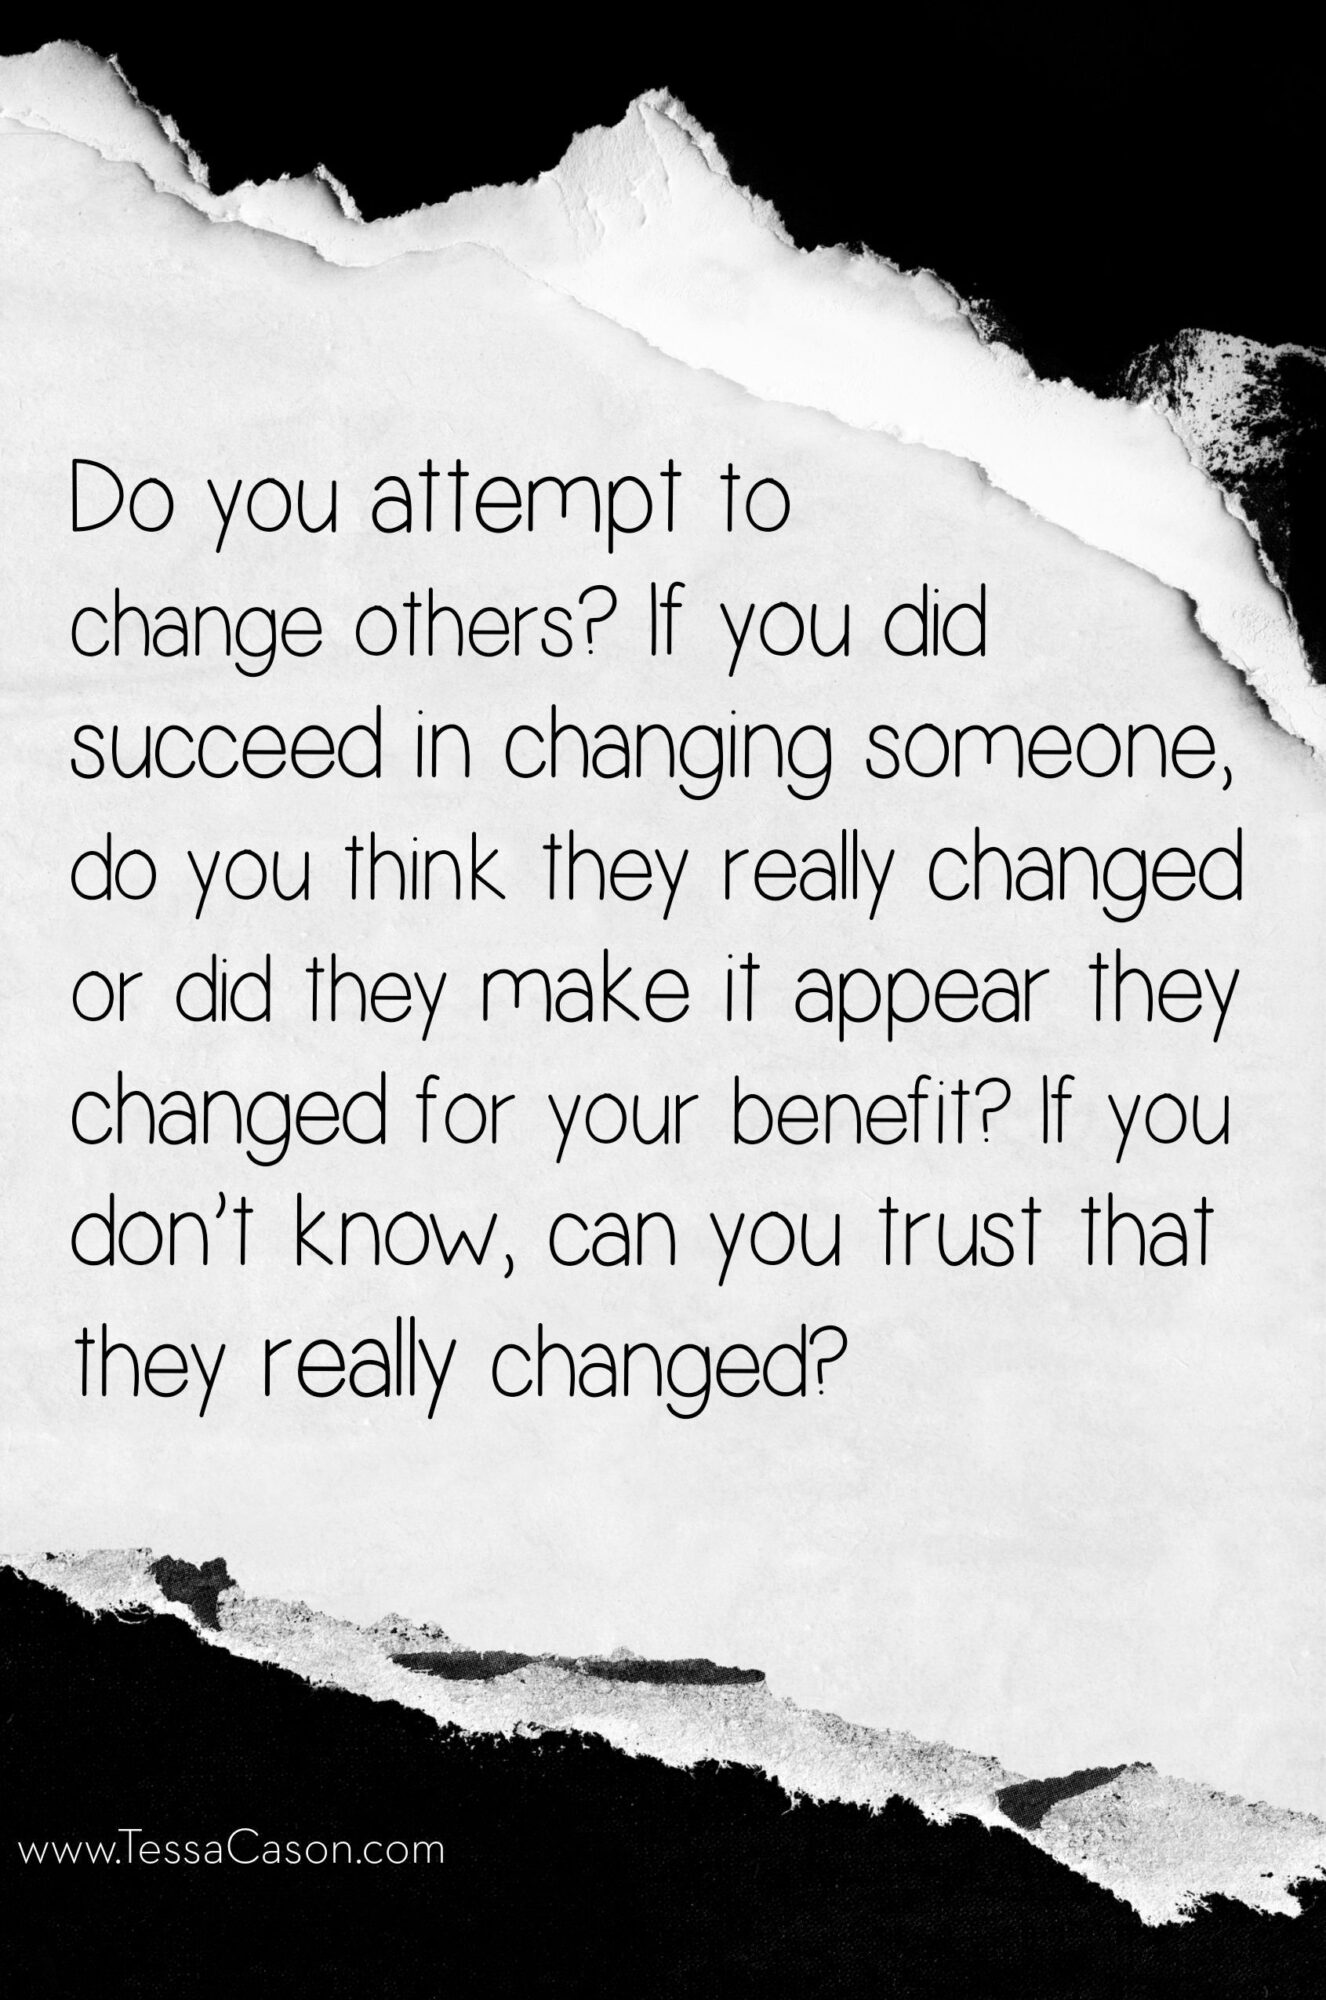 Do you attempt to change others